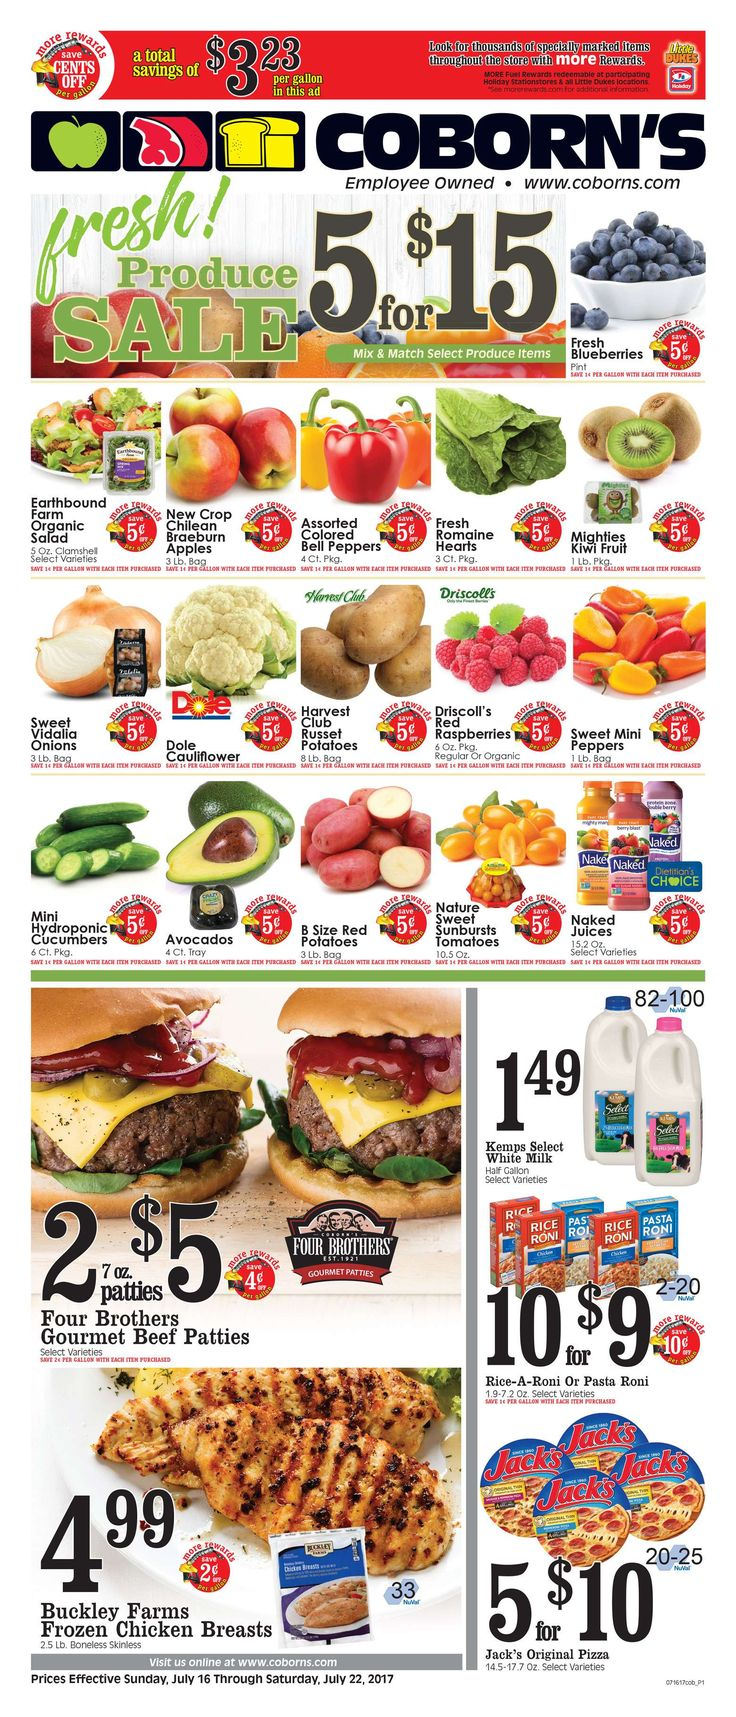 Coborn's Weekly Ad July 16 – 22, 2017 – Coborn's weekly circular becomes mainstream almost once a week but in many cases people the Coborn's ad and perhaps they are quick to throw it out. Checking the ads every week and clipping the coupons which come inside weekly circulars can really be a very rewarding experience. Coborn's regularly includes coupons which can equate his up to 50% off your purchase. This means that you could try out some of the hottest n